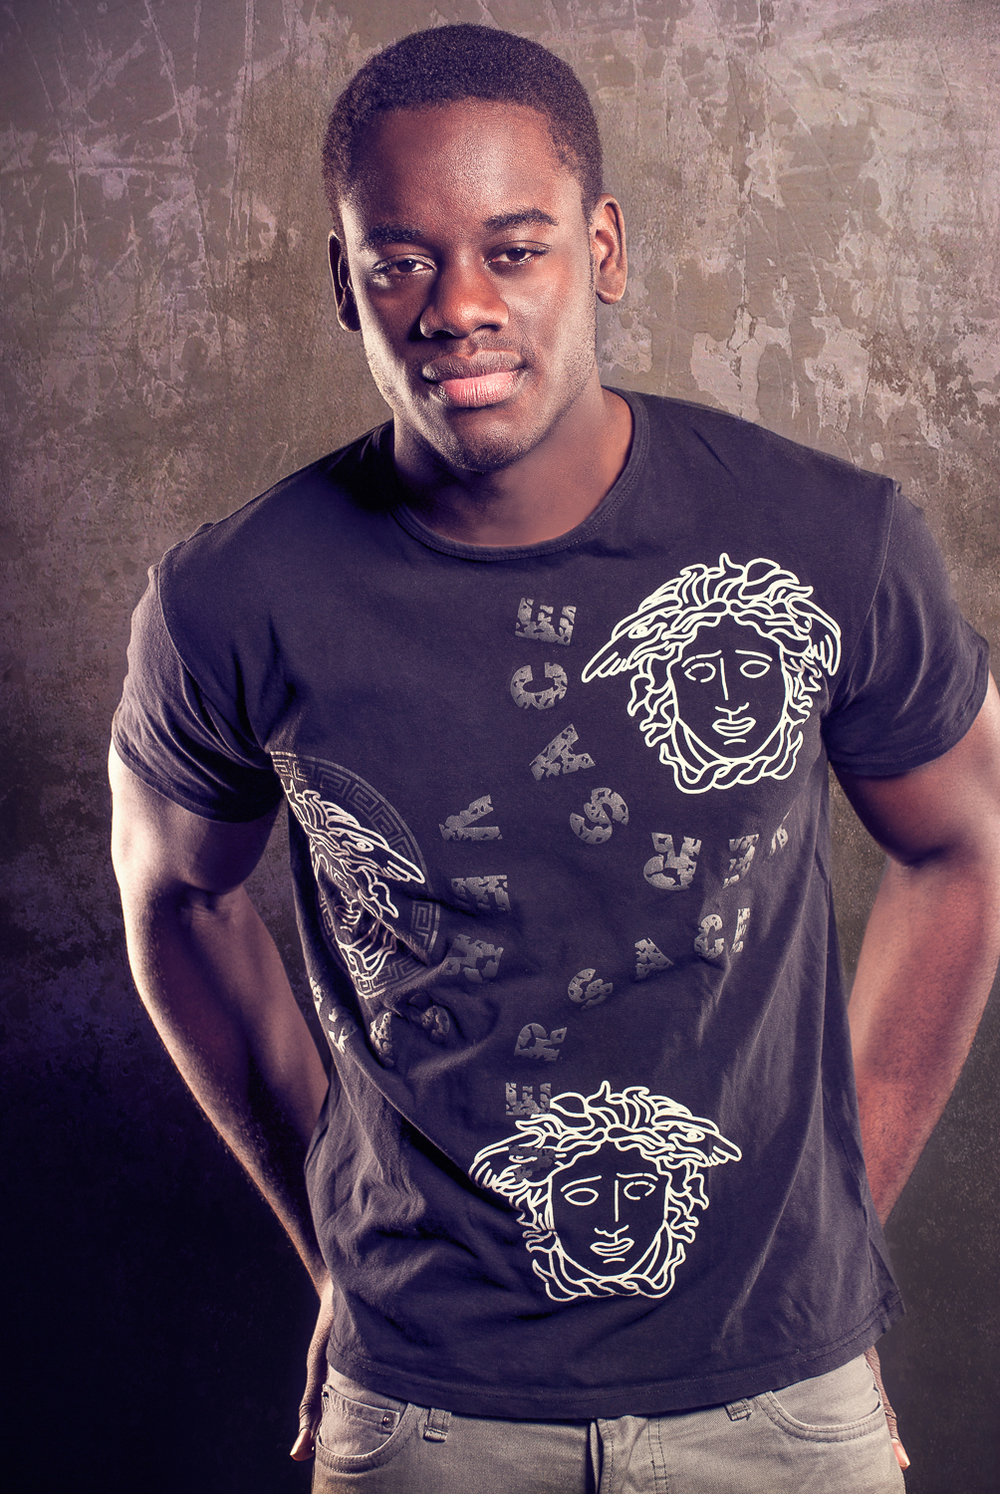 Hamilton Toronto Fashion Photographer - Male Model Graphic Tee by Marek Michalek.jpg